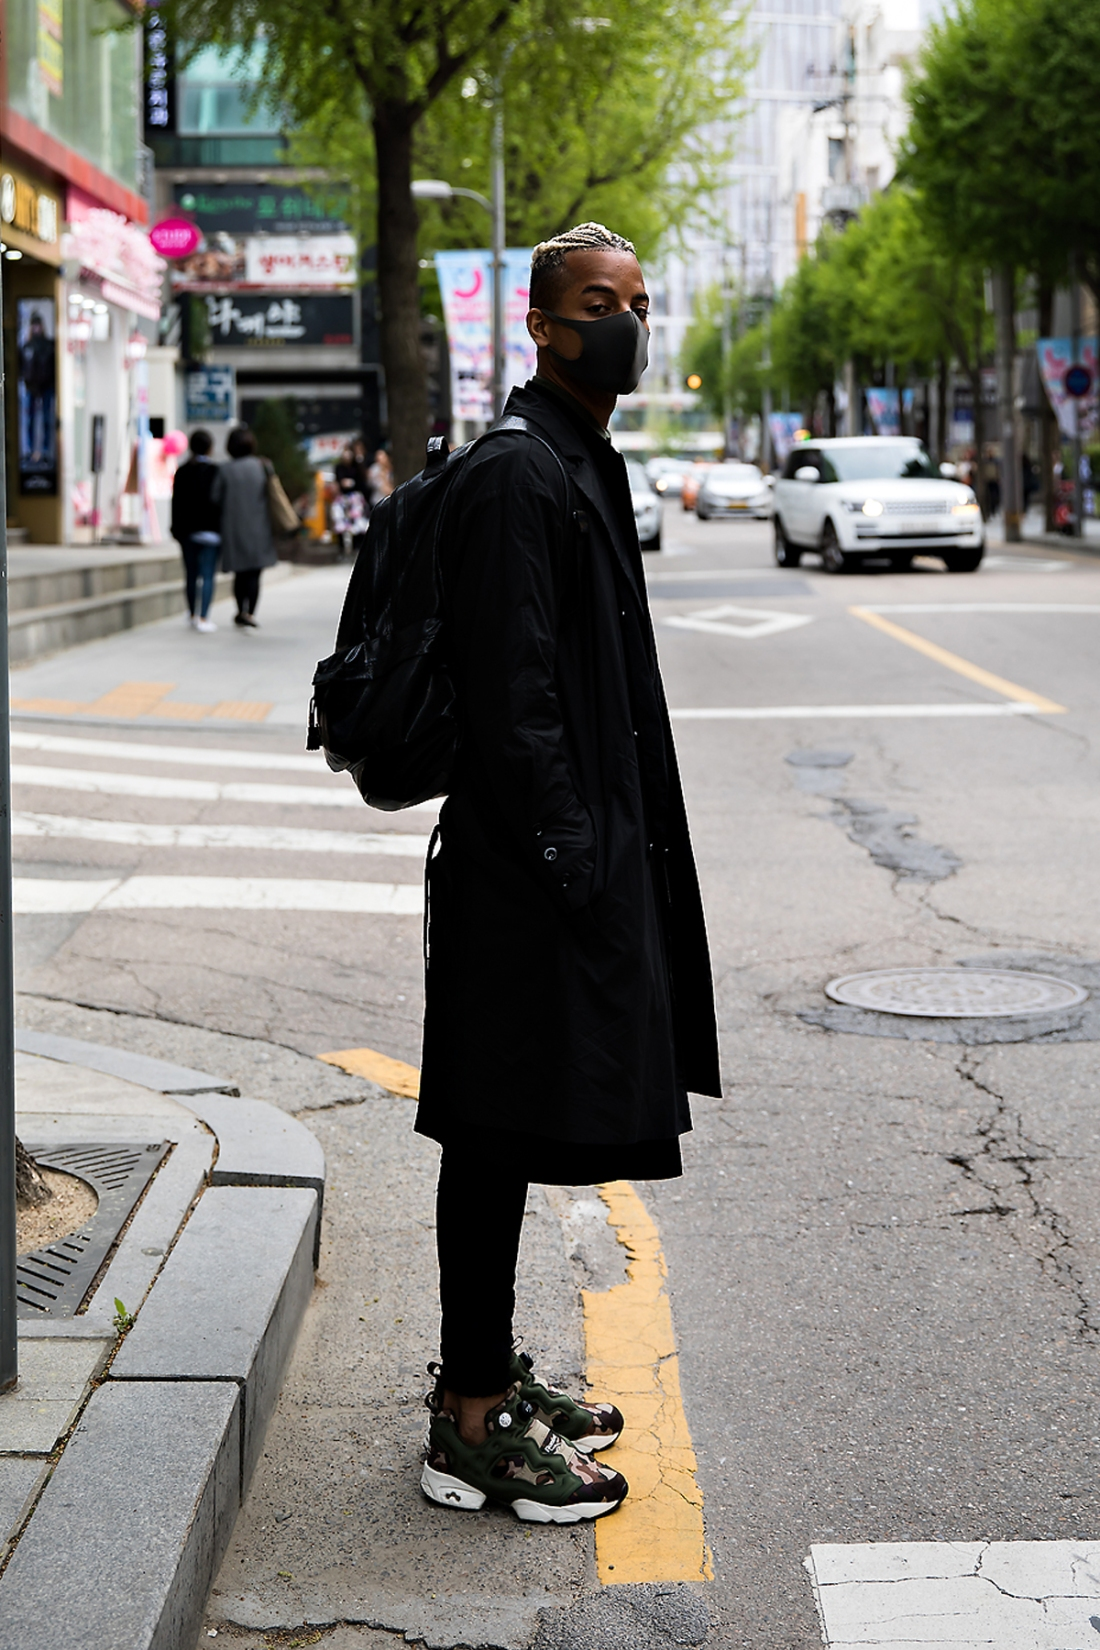 Paolo, Street Fashion 2017 in Seoul